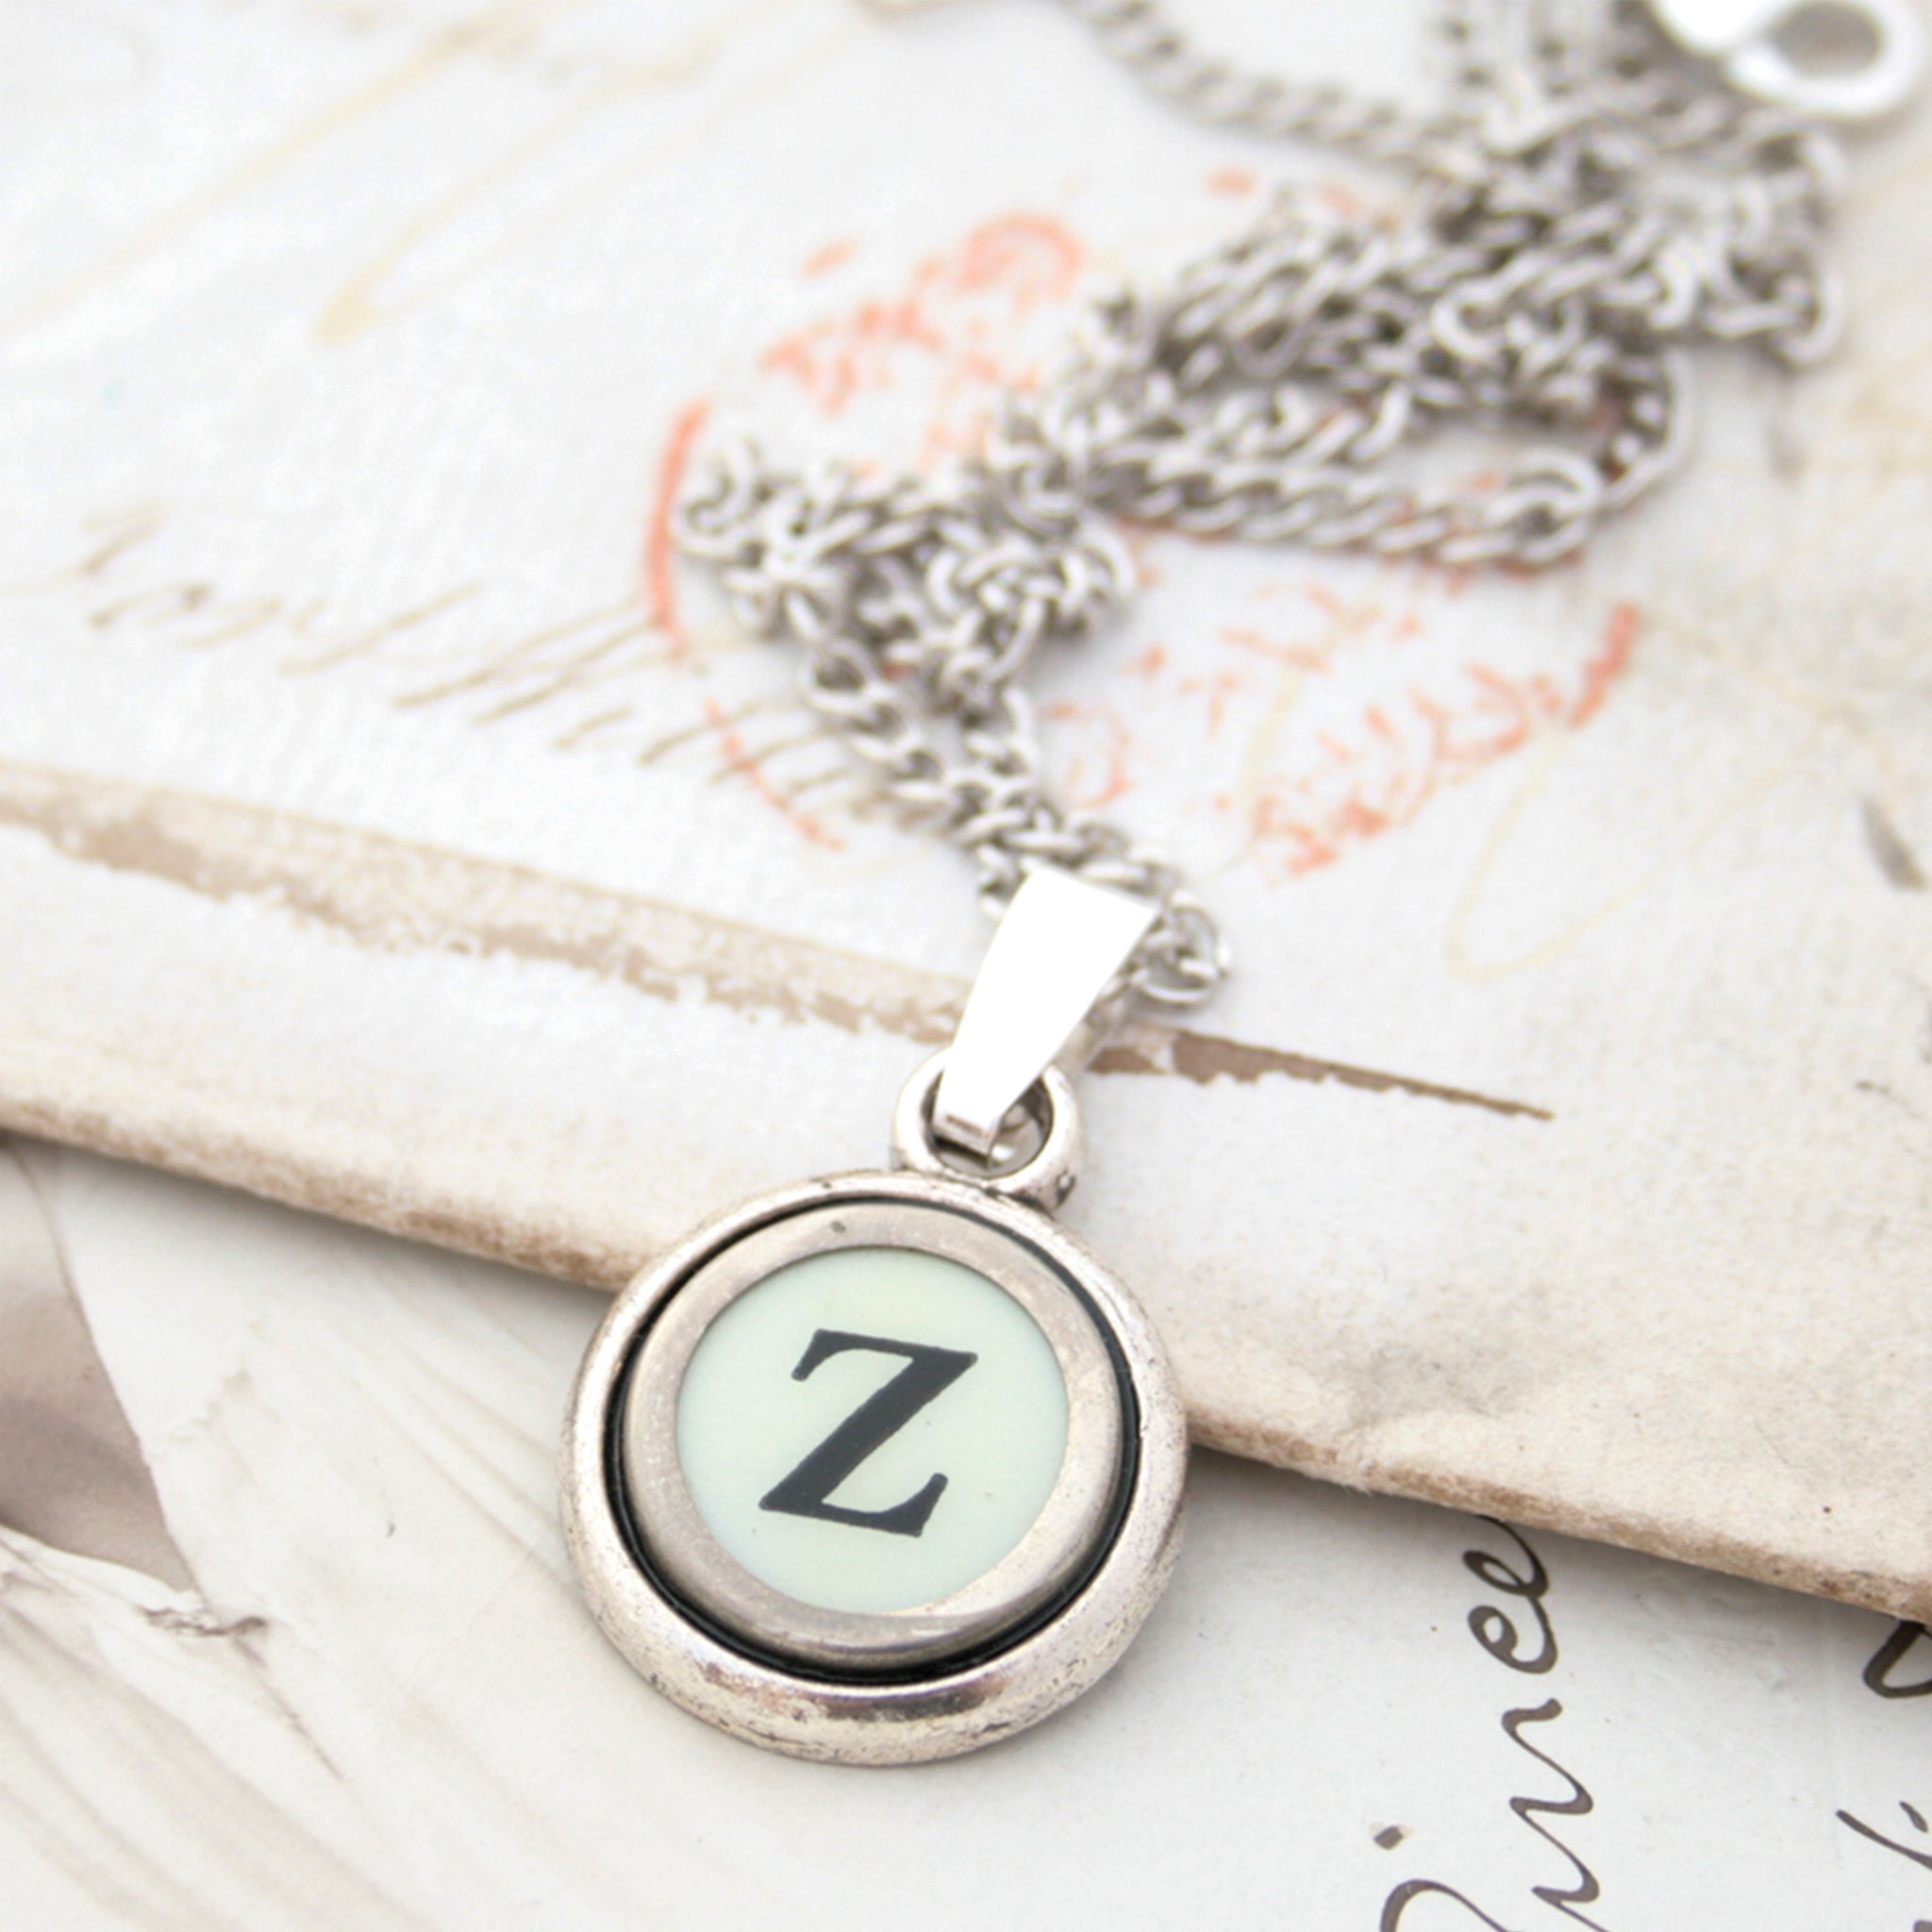 Ivory Z letter necklace made of typewriter key